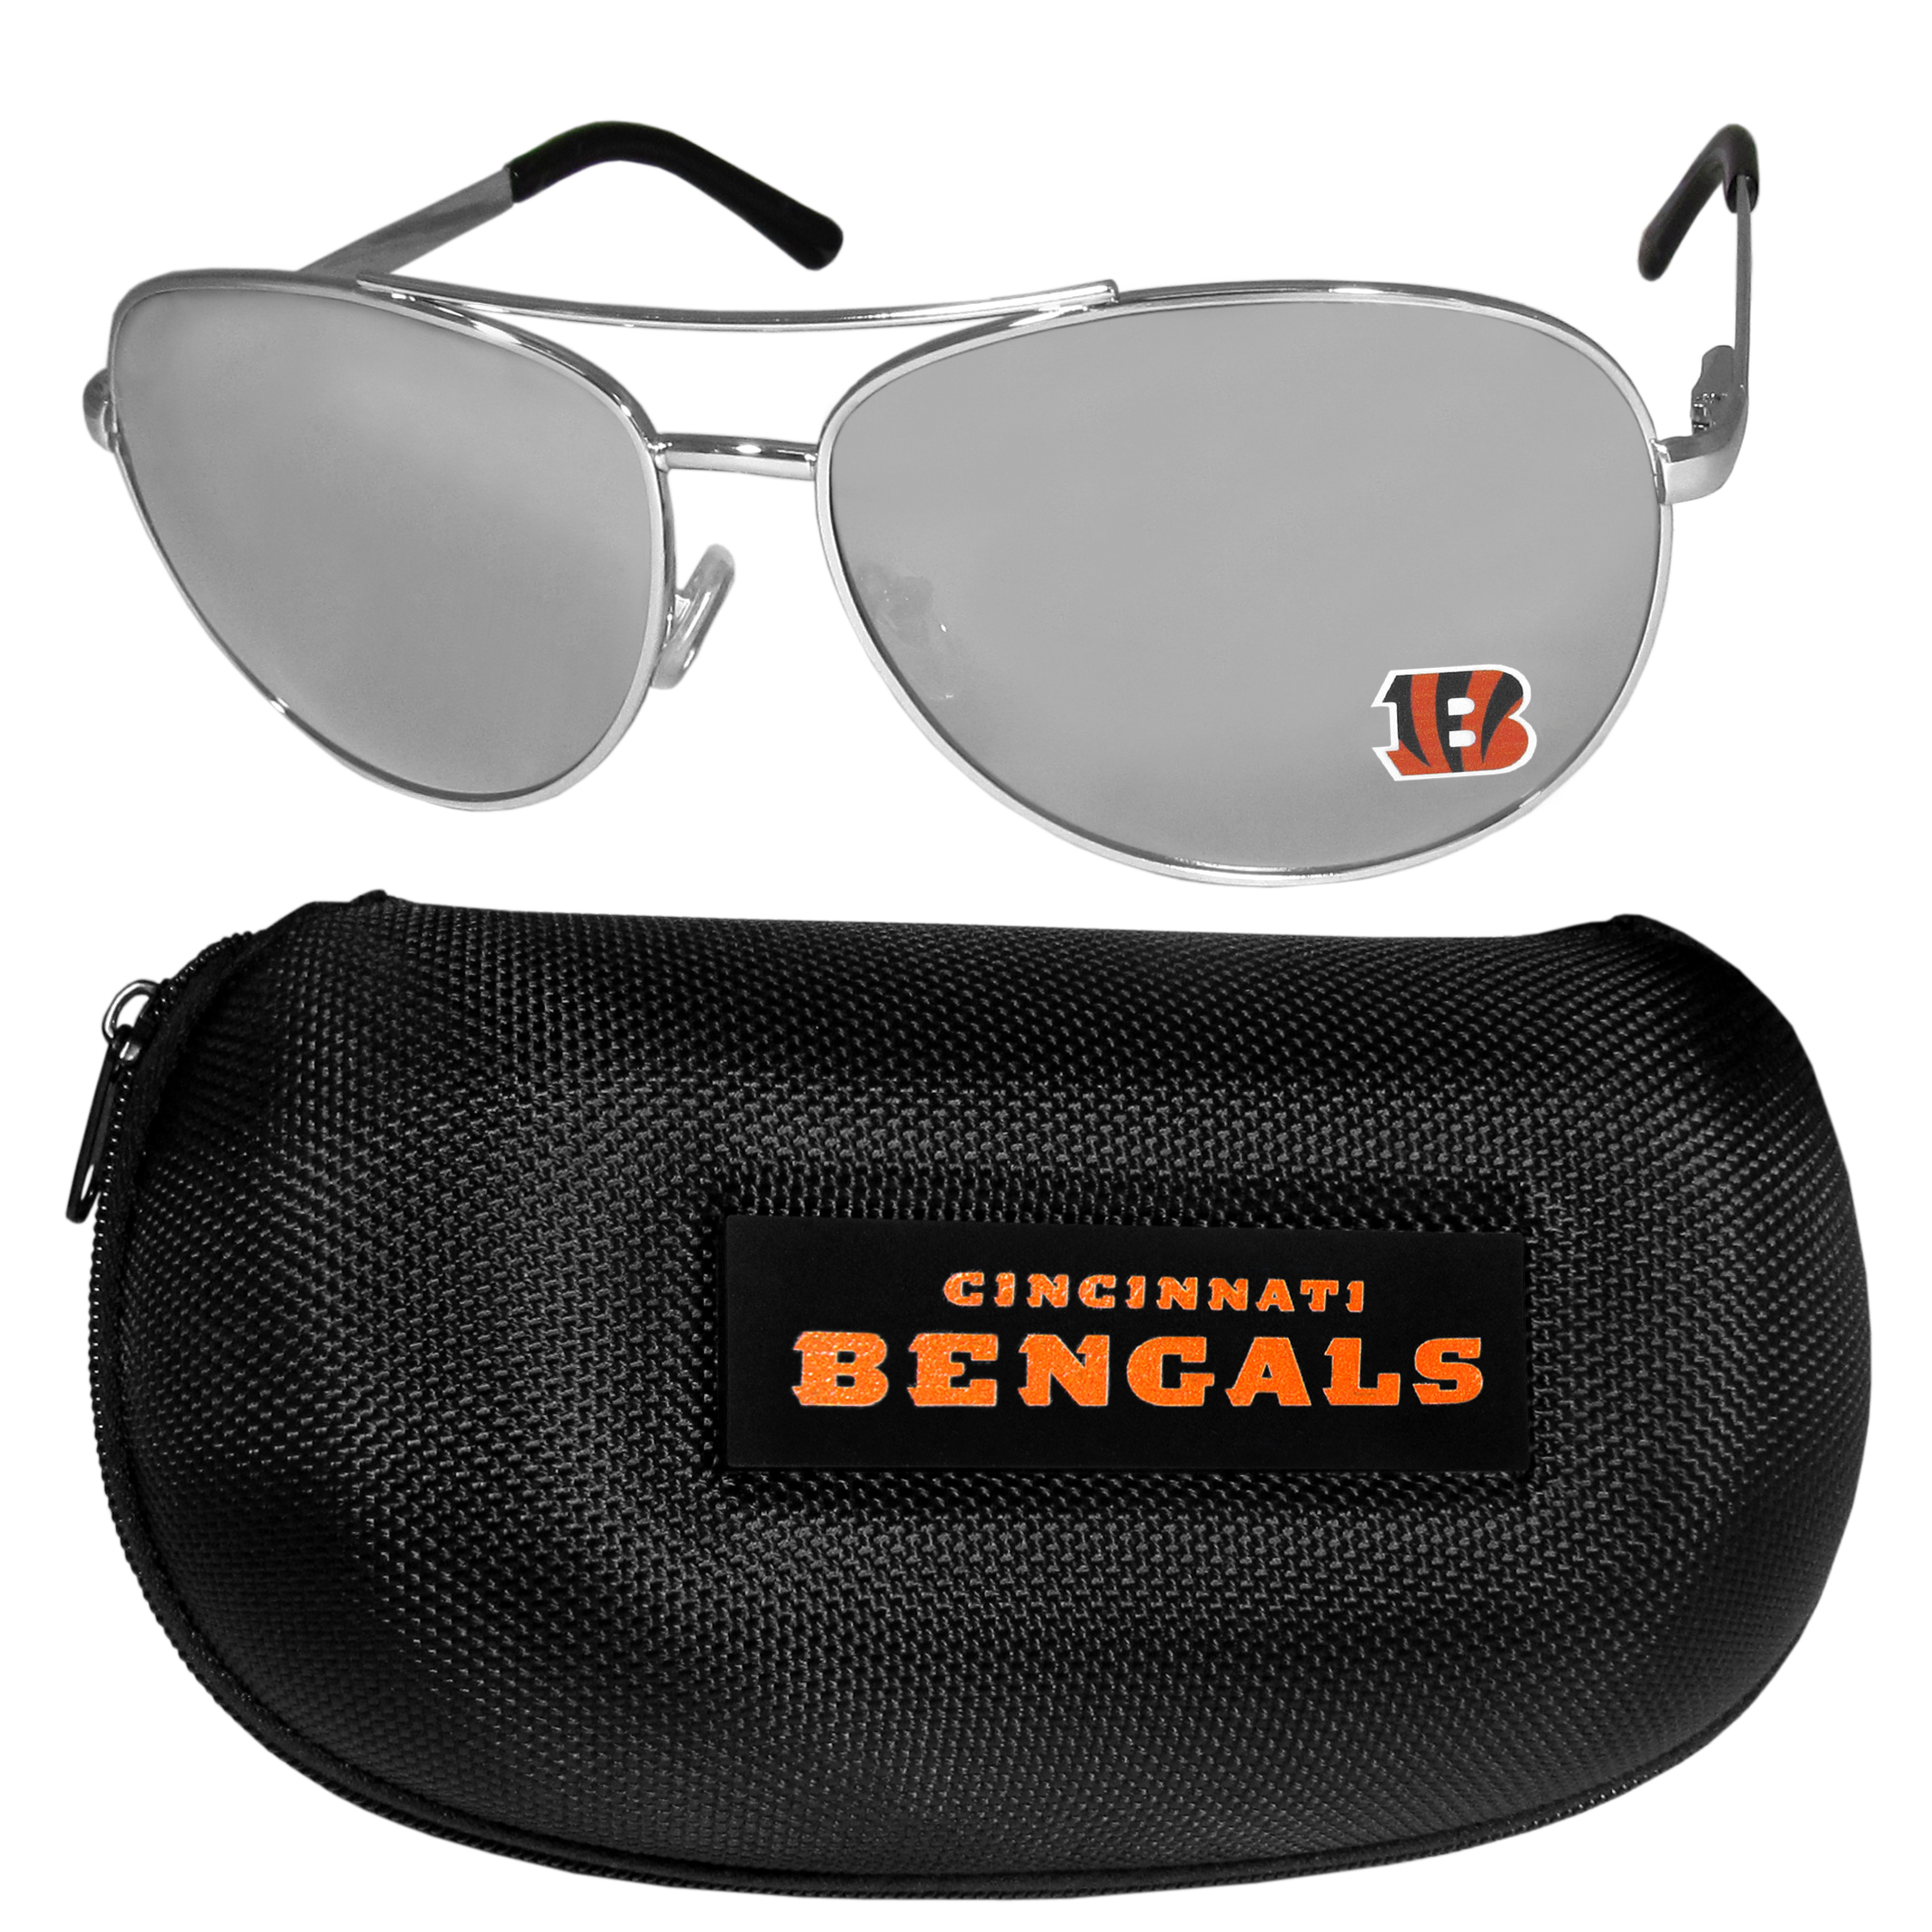 Cincinnati Bengals Aviator Sunglasses and Zippered Carrying Case - Aviator sunglasses are truly an iconic retro fashion statement that never goes out-of-style. Our Cincinnati Bengals  aviator sunglasses pair this classic look with your love of the game. The iridium coated lenses reduce glare while driving, boating, golfing and their 100% UVA/UVB rating provides you with the maximum UV protection for all your outdoor activities. A millennial favorite, these affordable designer frames are the perfect eyewear accessory for a sports fan that is looking for high-quality at an affordable price. The durable, flex hinged frames are tough enough for hiking and camping or if you prefer sun bathing by the pool or on the beach these shades will really stand the test of time. The sunglasses come with a hard shell zippered case which has a large team logo on the lid that will make even the most die-hard fan proud!